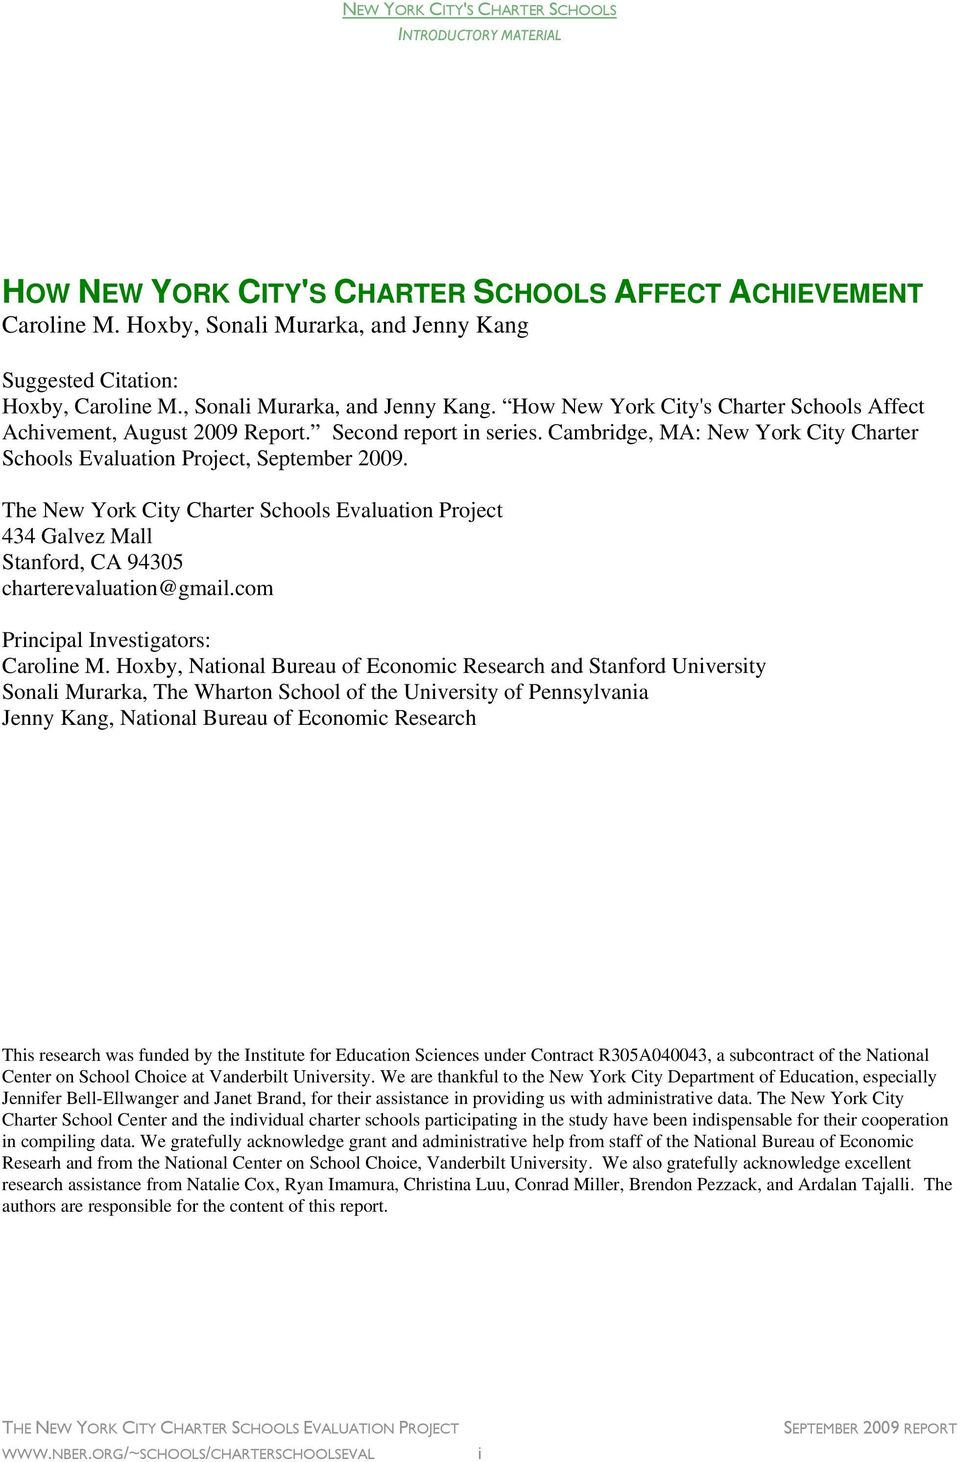 Cambridge, MA: New York City Charter Schools Evaluation Project, September 2009. The New York City Charter Schools Evaluation Project 434 Galvez Mall Stanford, CA 94305 charterevaluation@gmail.